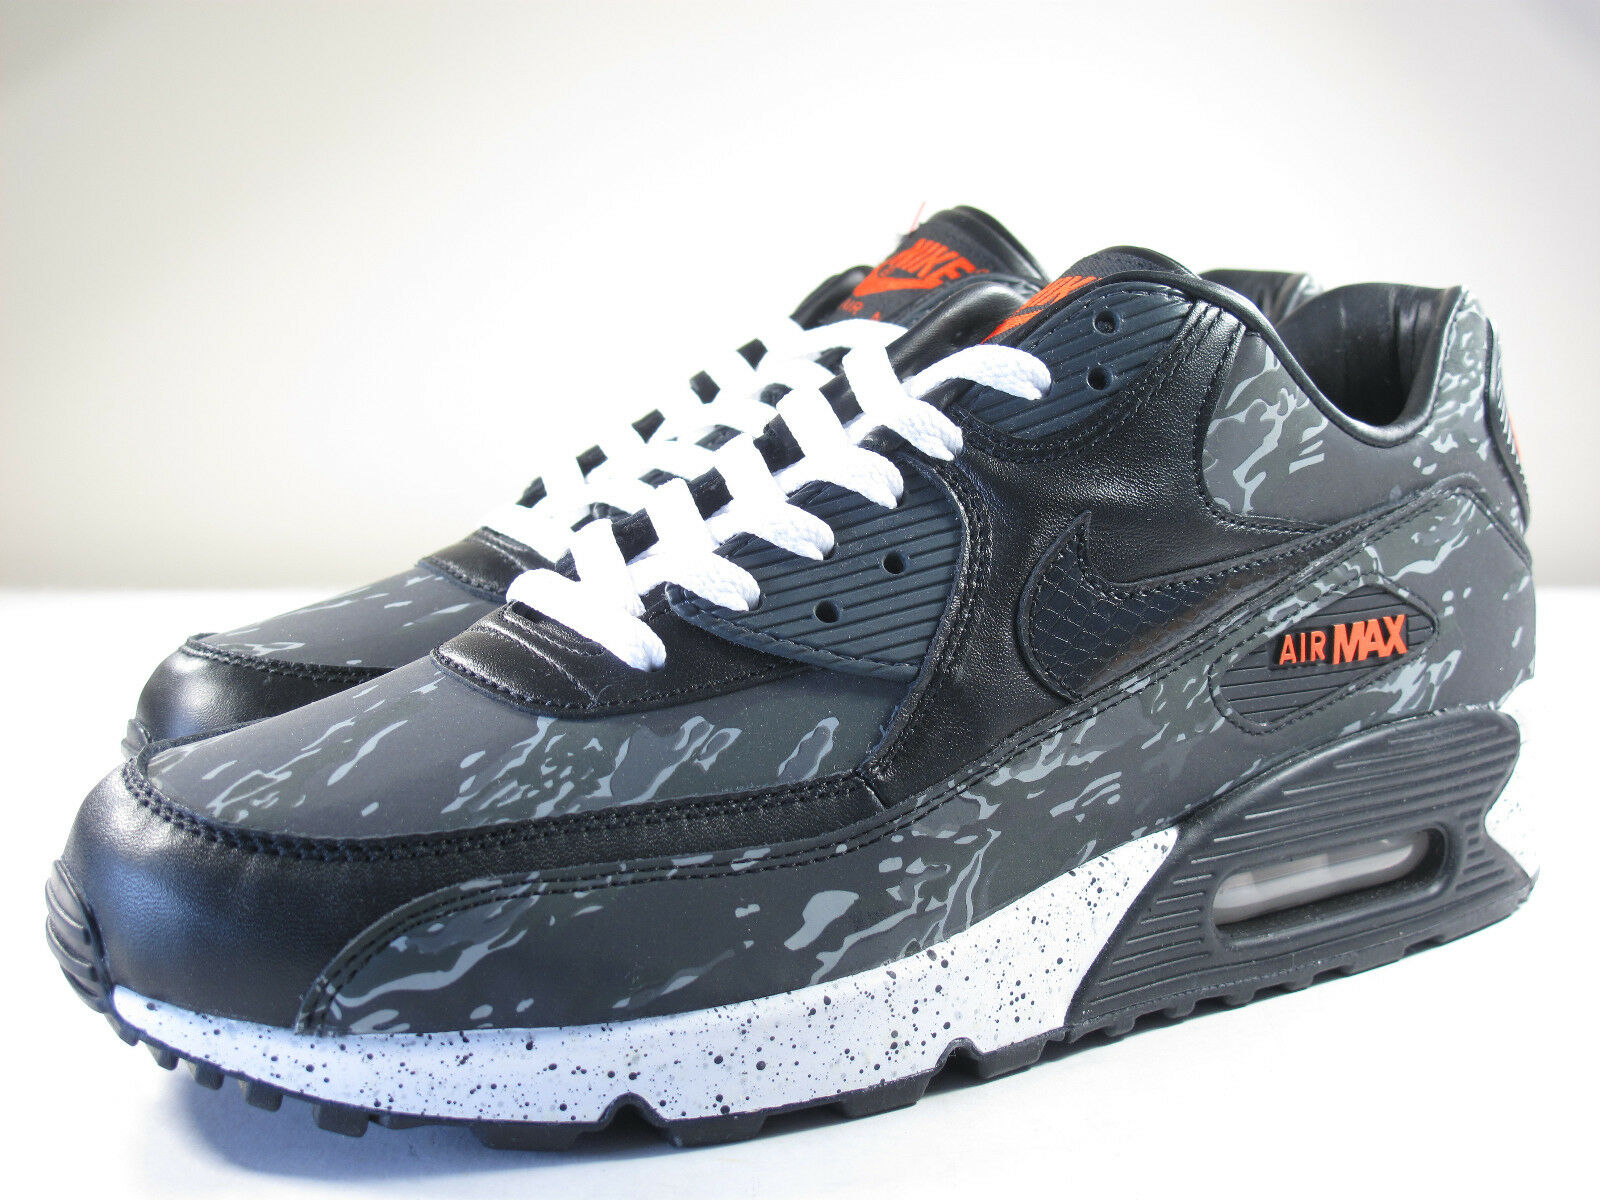 DS NIKE 2013 AIR MAX 90 ATMOS TIGER CAMO DARK CHARCOAL 12 FLYKNIT 1 DUCK  95 180